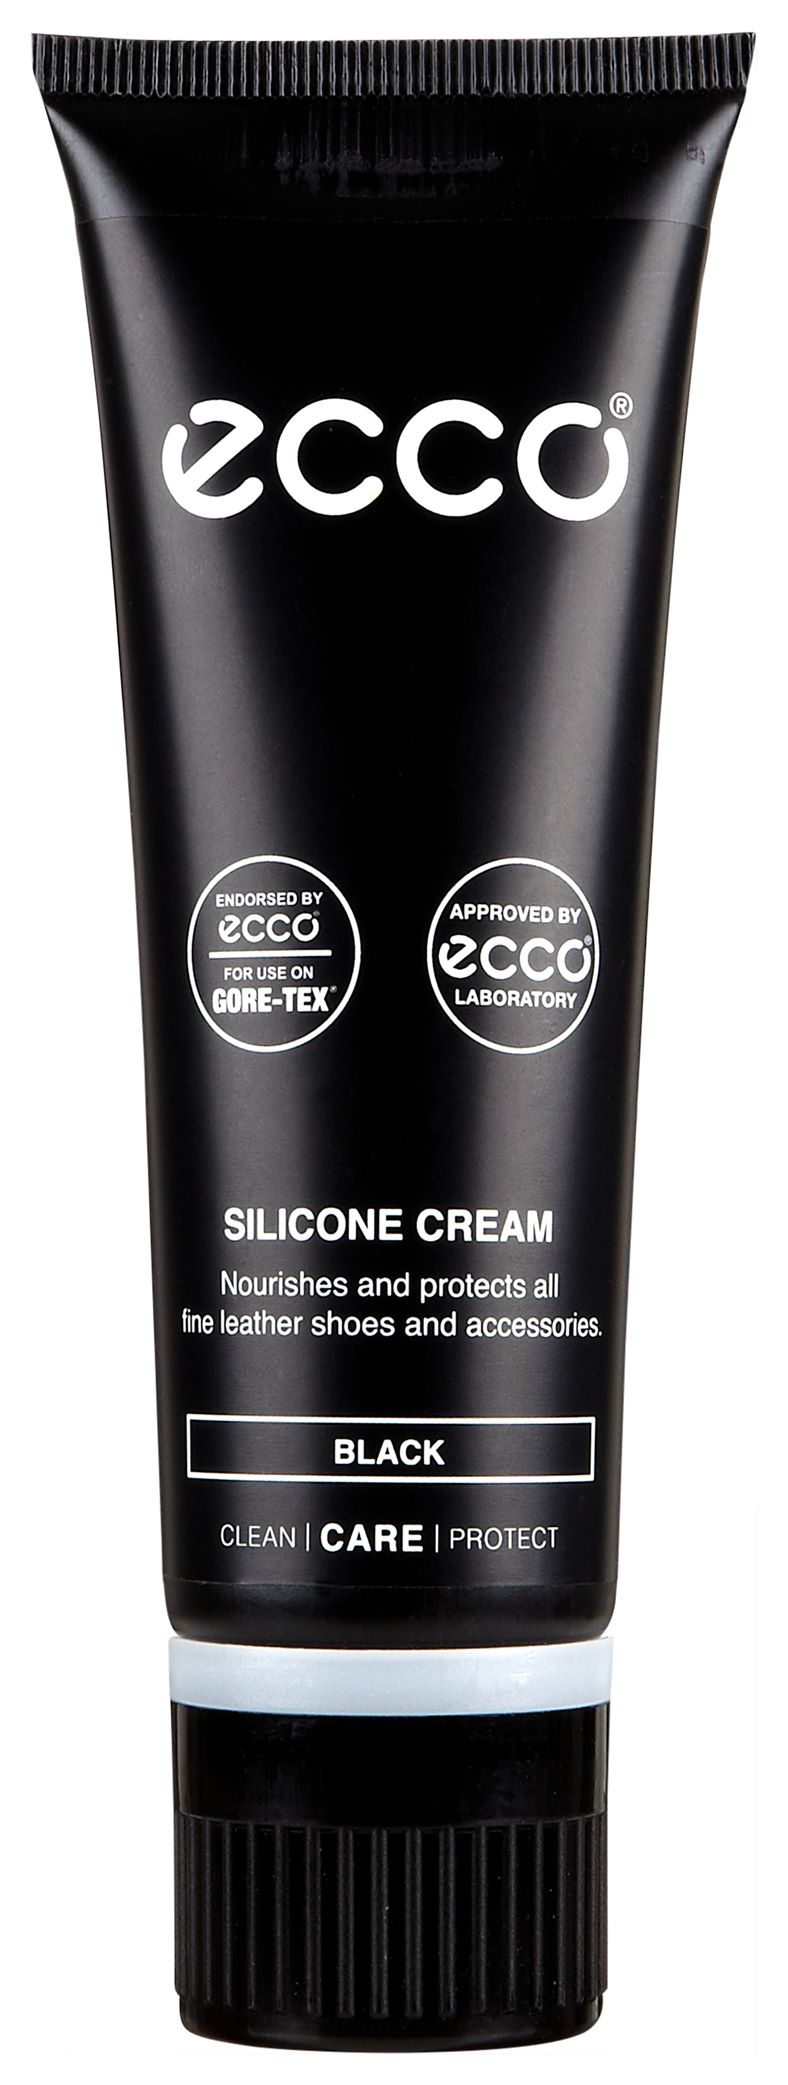 Silicone Cream (Black)